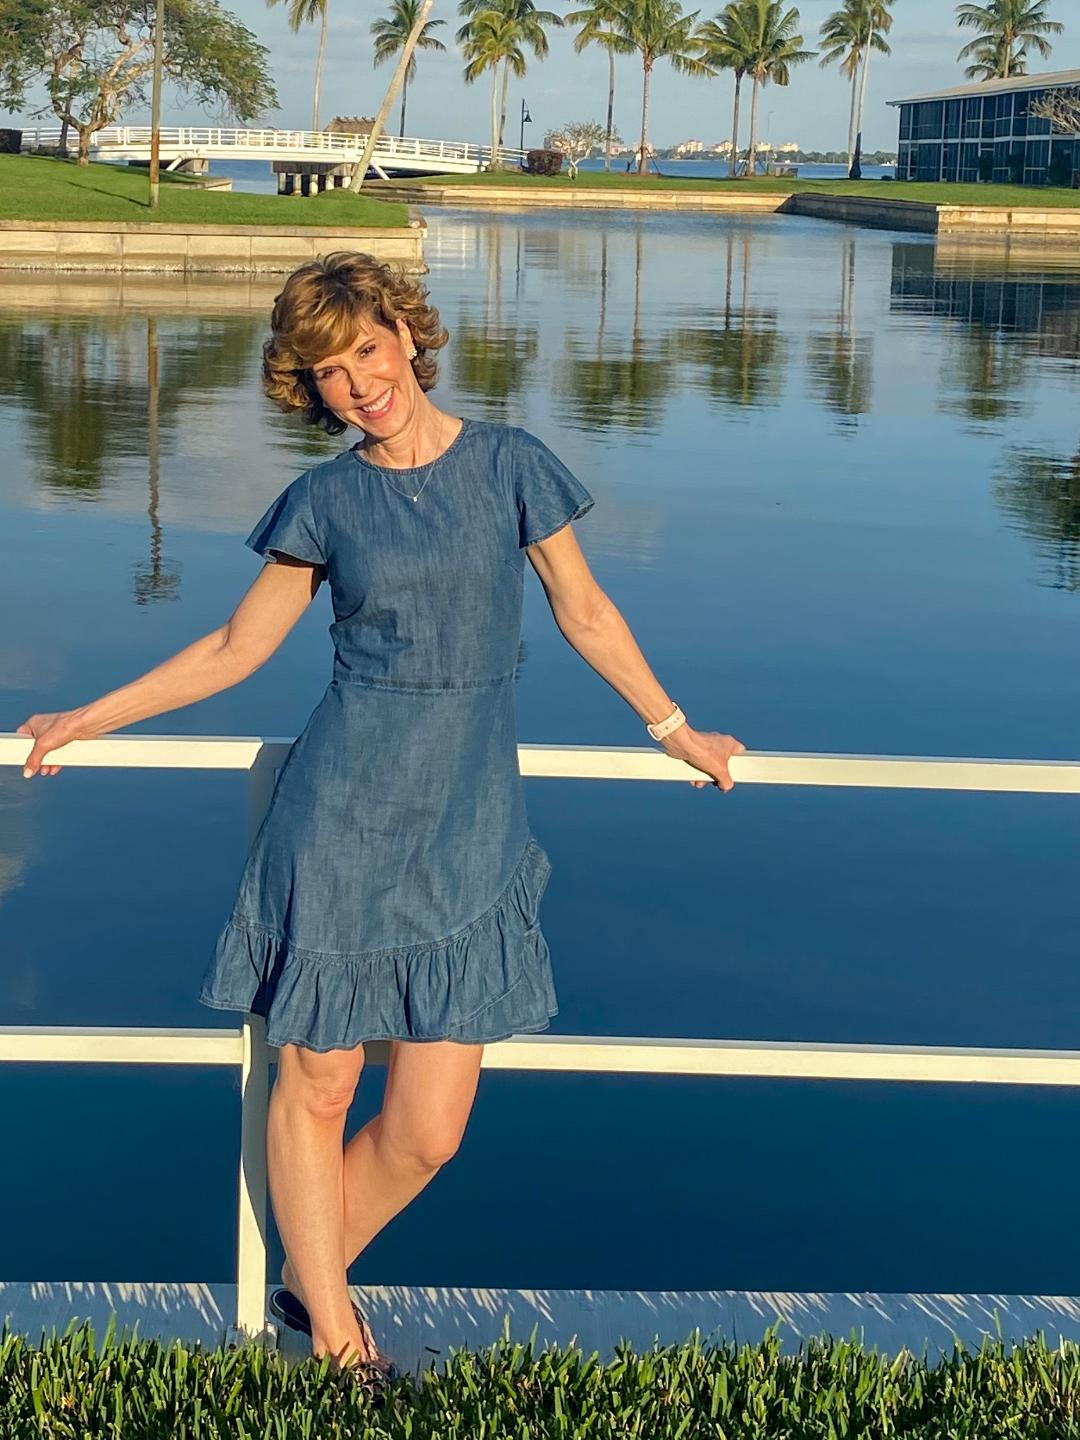 woman in blue dress standing against a white railing in front of water